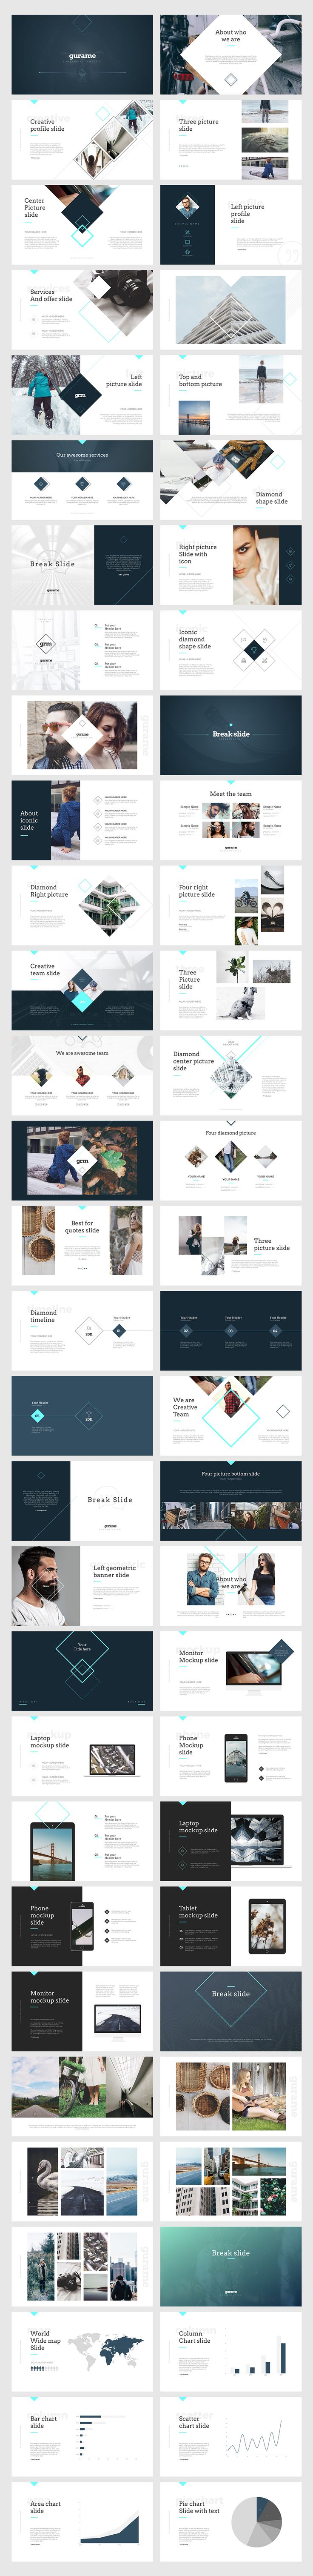 Gurame PowerPoint Template by Angkalimabelas on @creativemarket